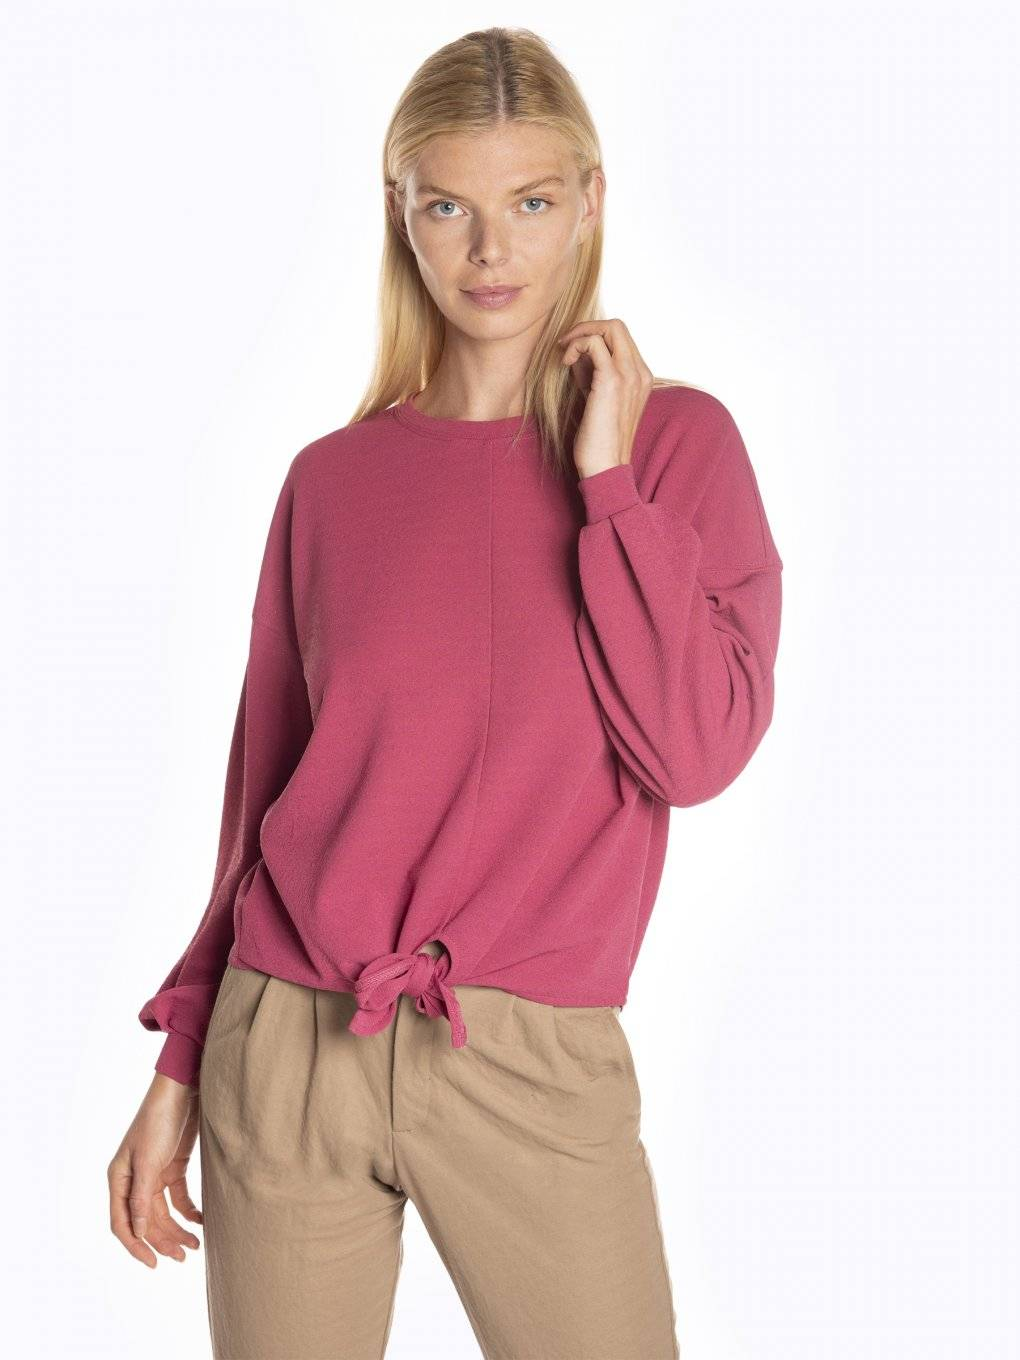 Baloon sleeve t-shirt with knot